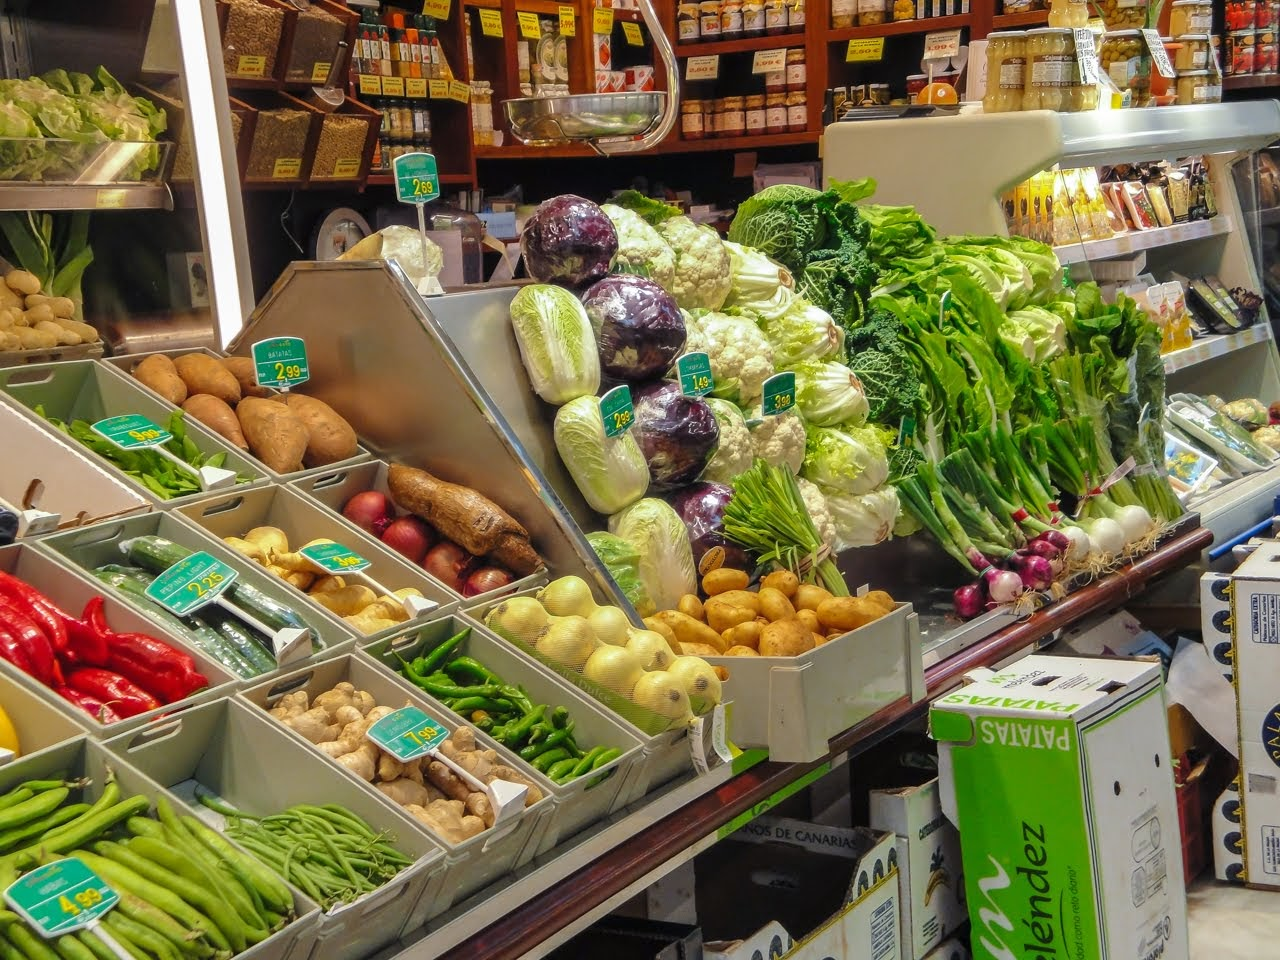 A vegetable vendor's stand featuring local cabbage, potatoes, onions, ginger, and more